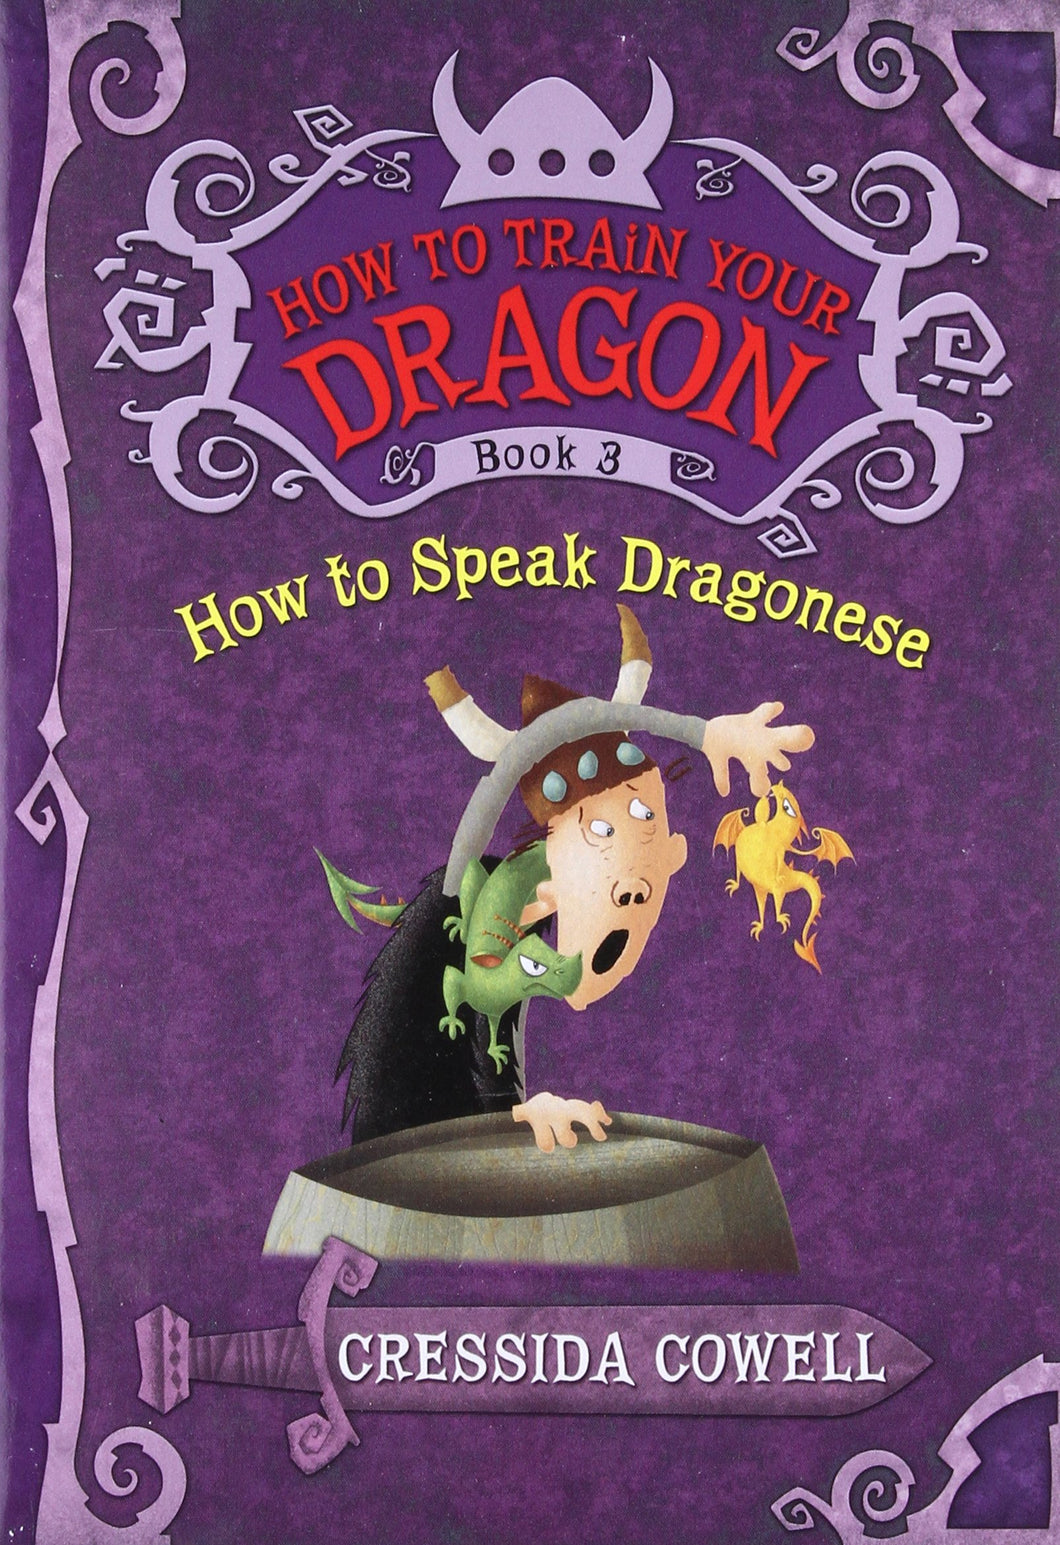 How to Speak Dragonese (How to Train Your Dragon Book 3)